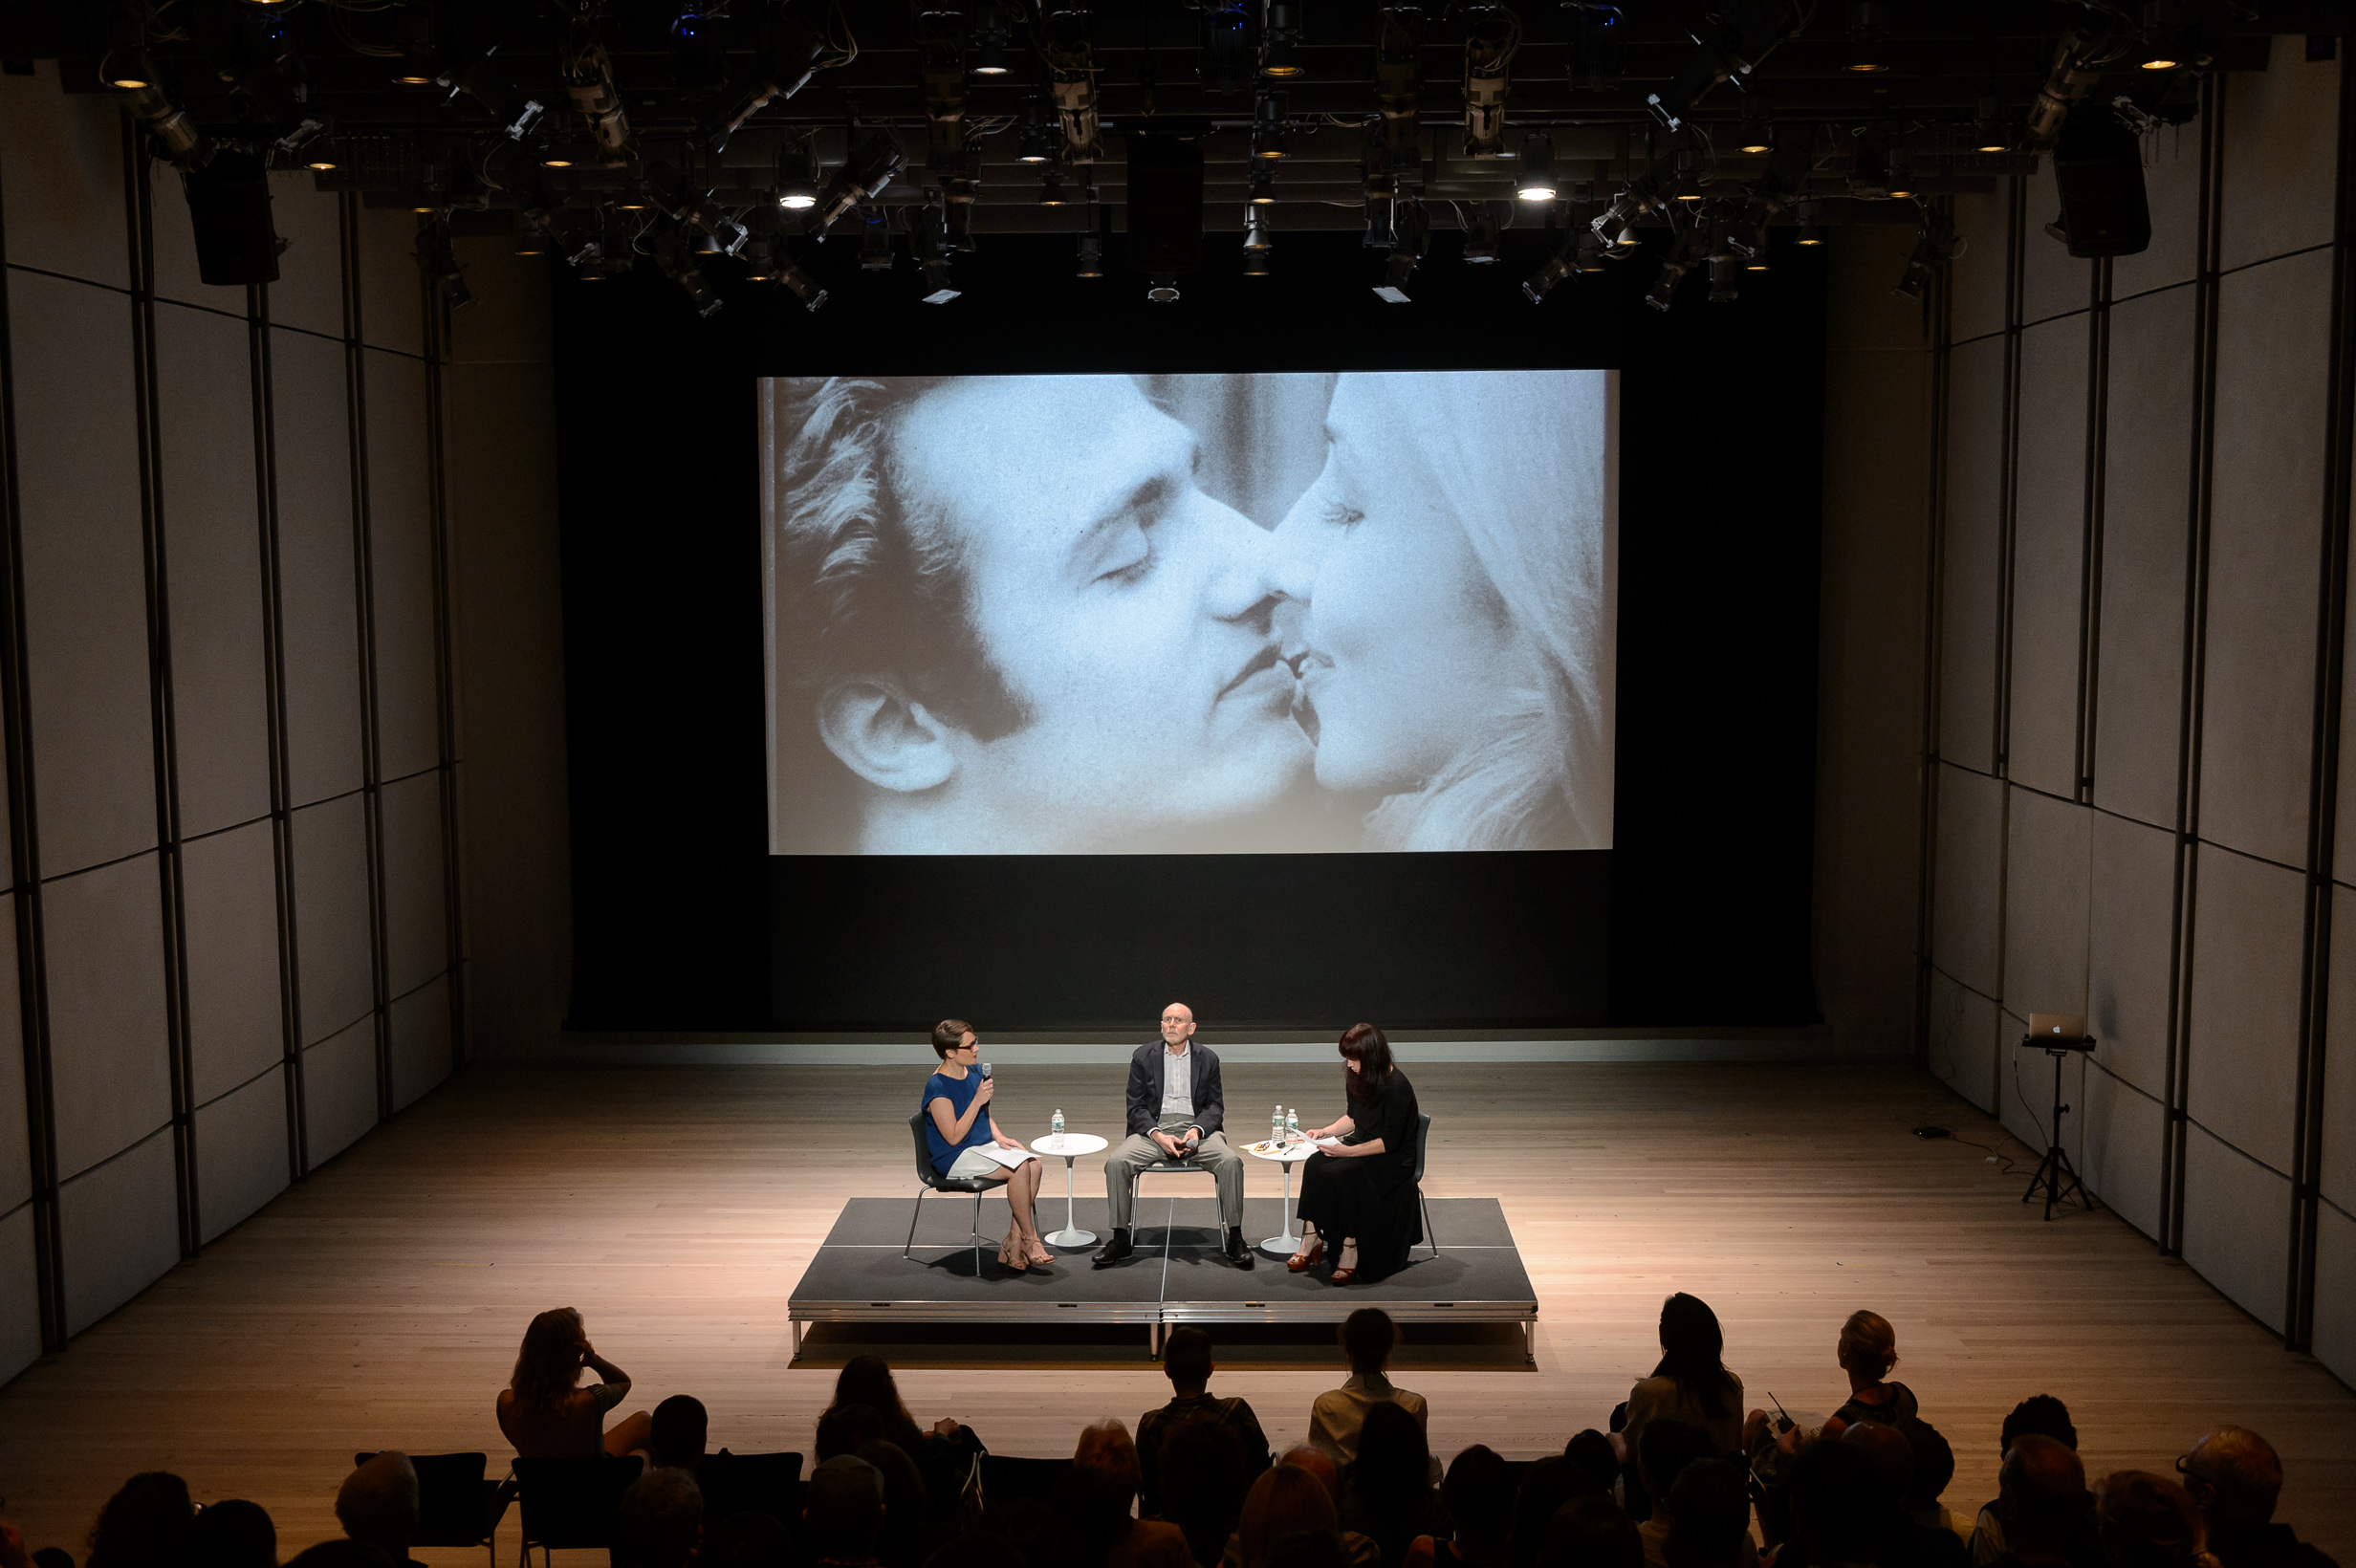 Conversation with Alex Bag, Bruce Jenkins, and Claire Henry following a screening of Andy Warhol's film Soap Opera (1964) in the Laurie M. Tisch Education Center, 2015. Photo by Filip Wolak